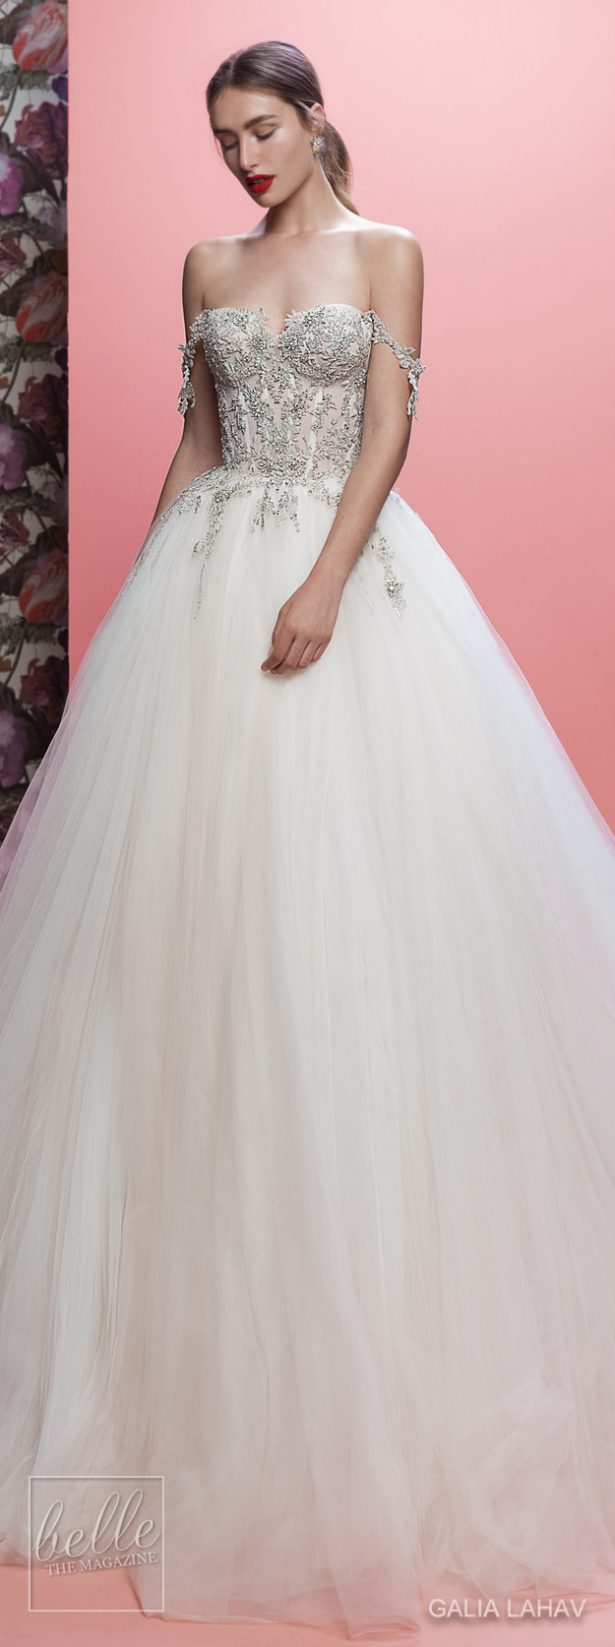 Wedding Dresses By Galia Lahav Couture Bridal Spring 2019 Collection- Queen of Hearts - Mia